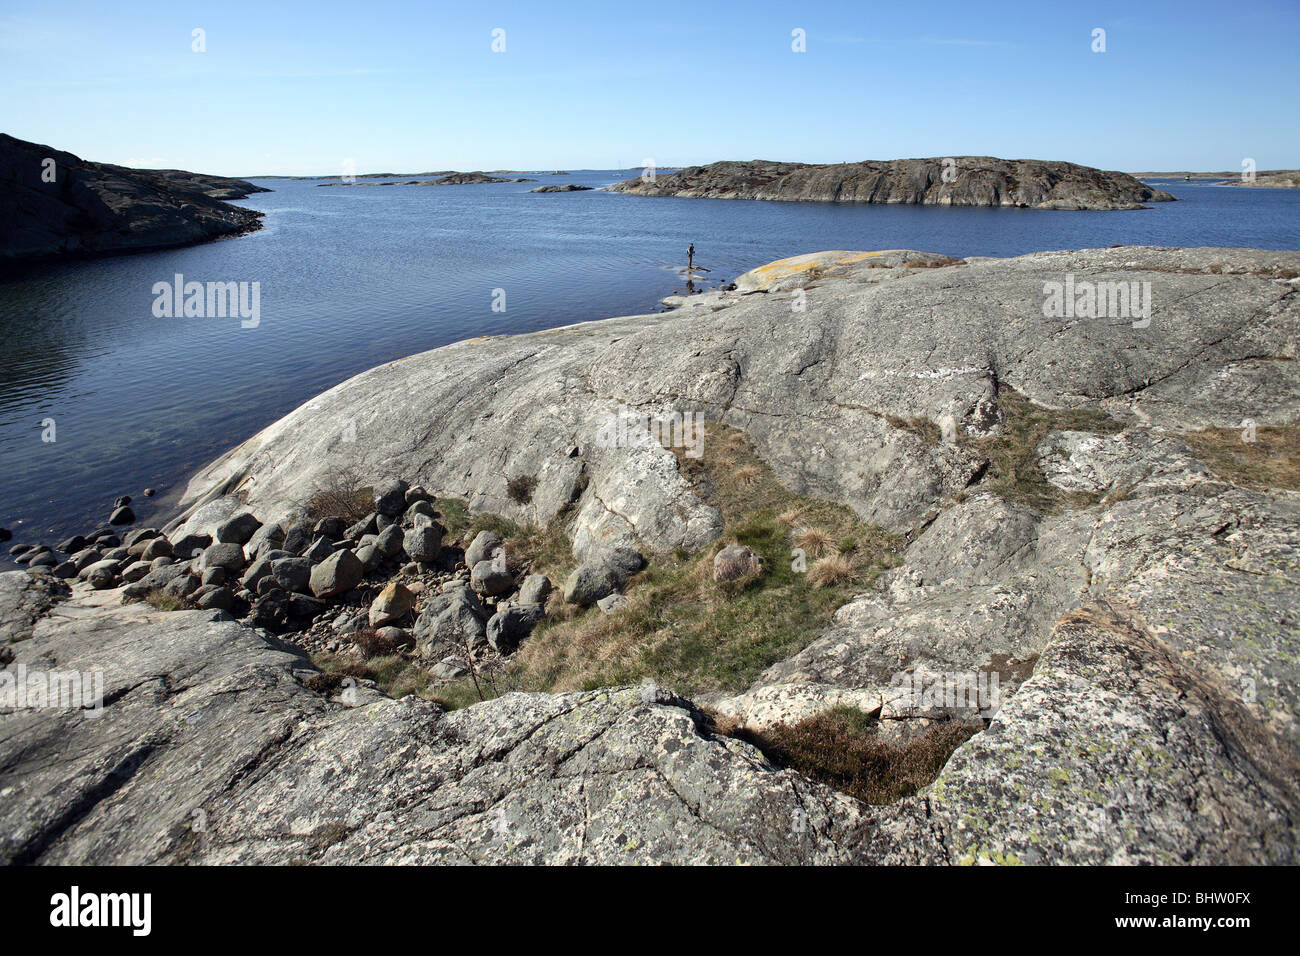 Landscape at the Baltic Sea in Stocken, Orust, Sweden - Stock Image